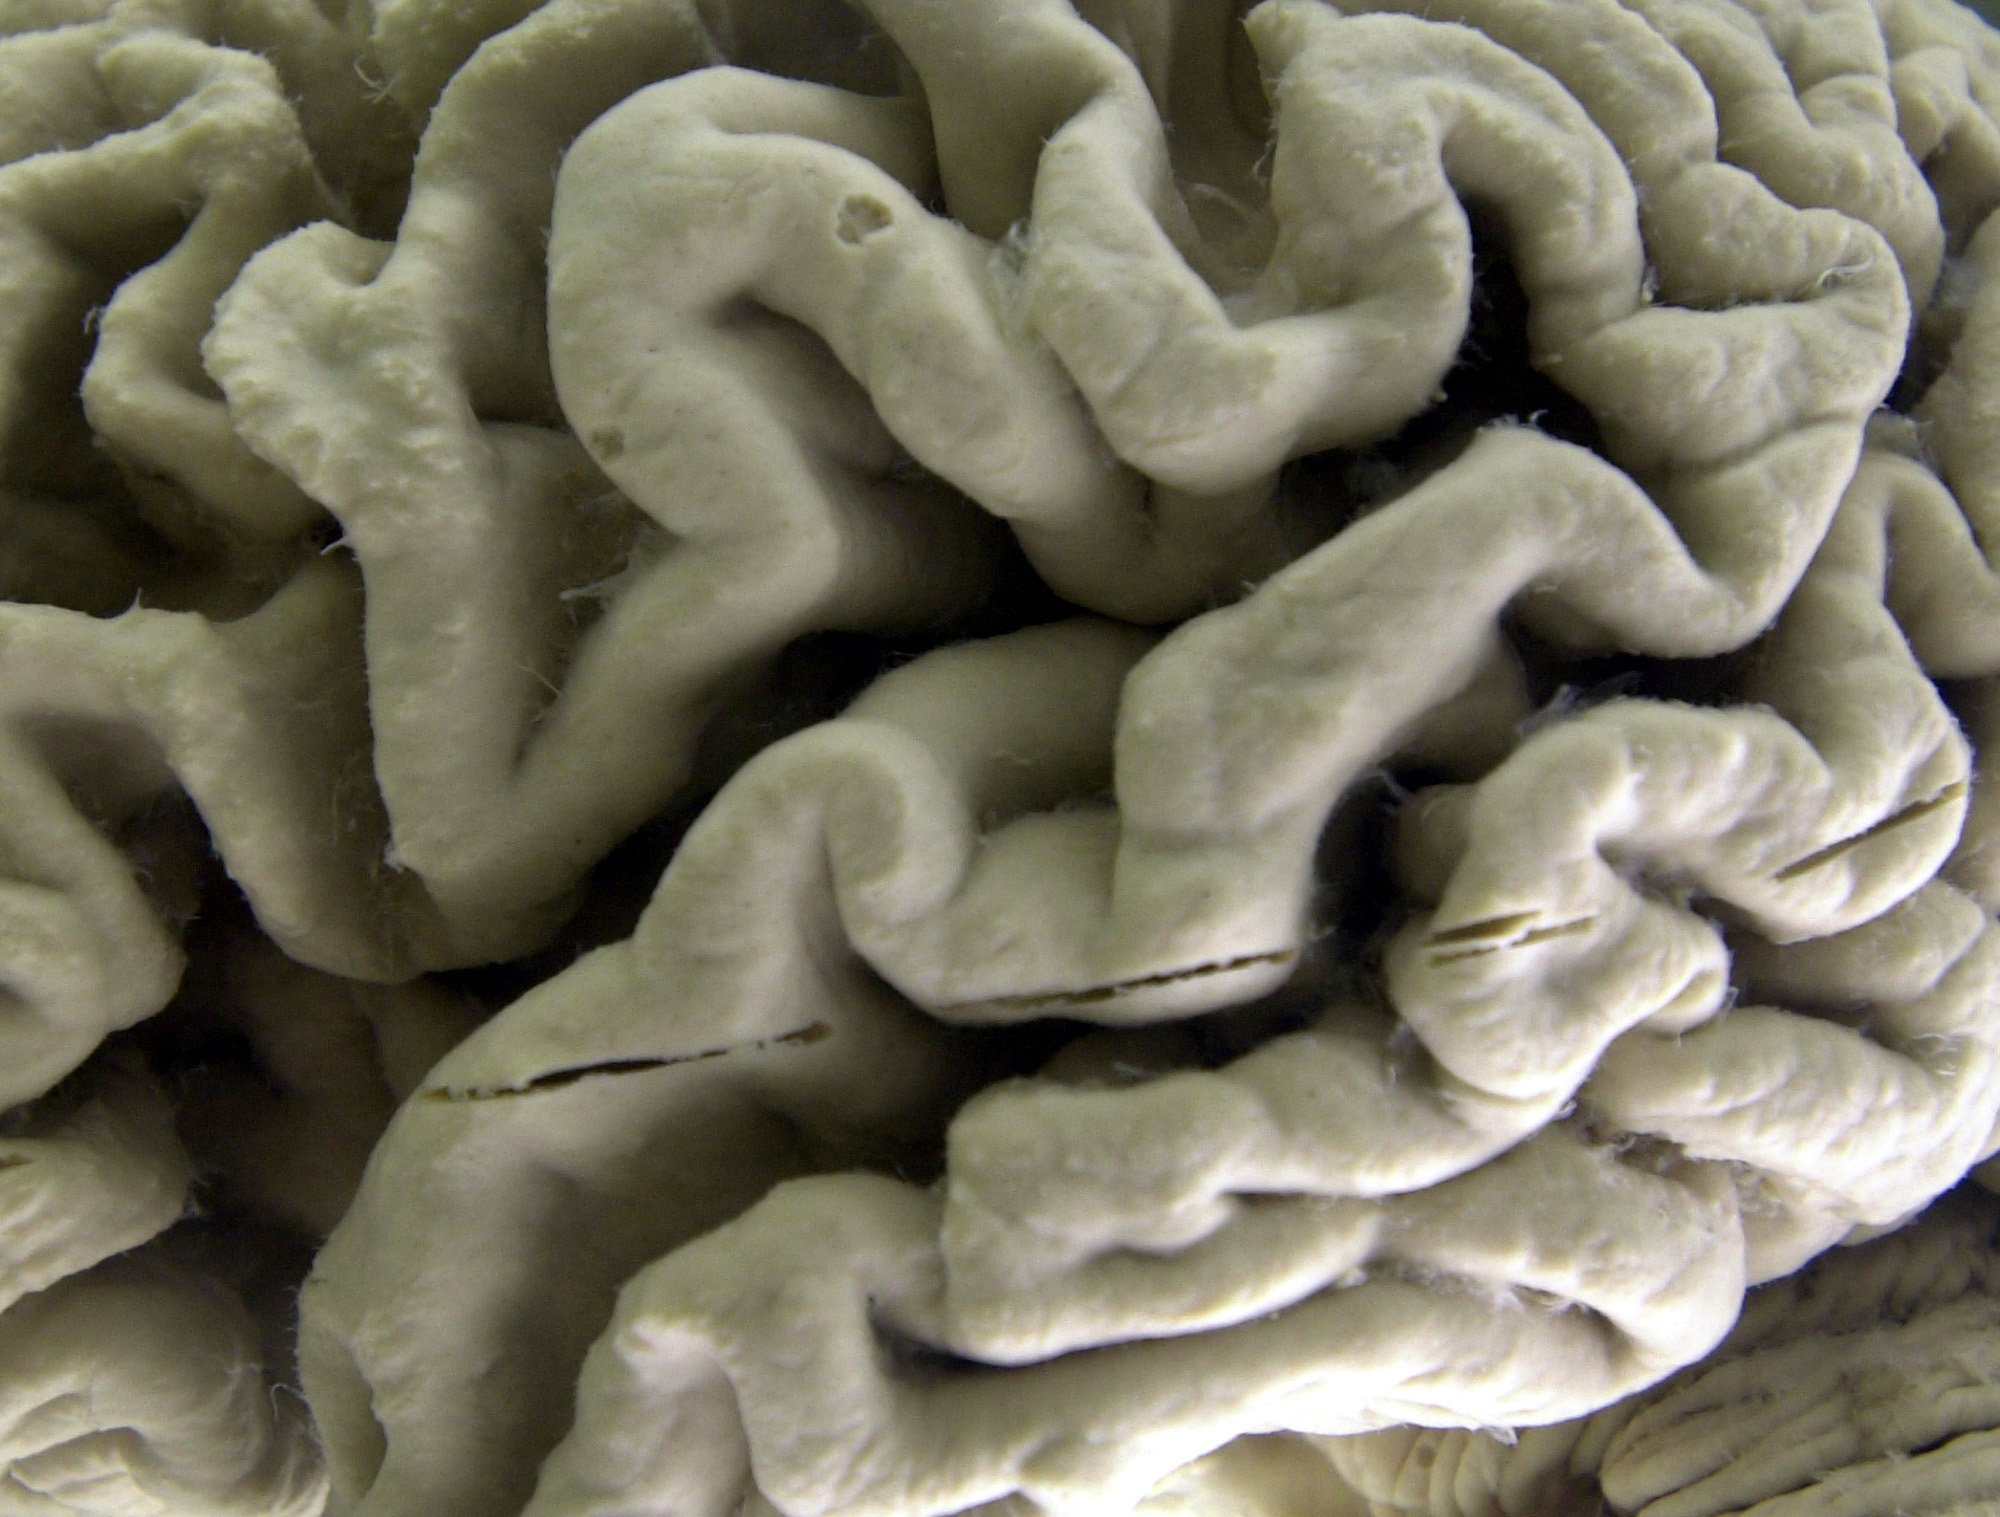 Hints that lifestyle changes might guard against dementia